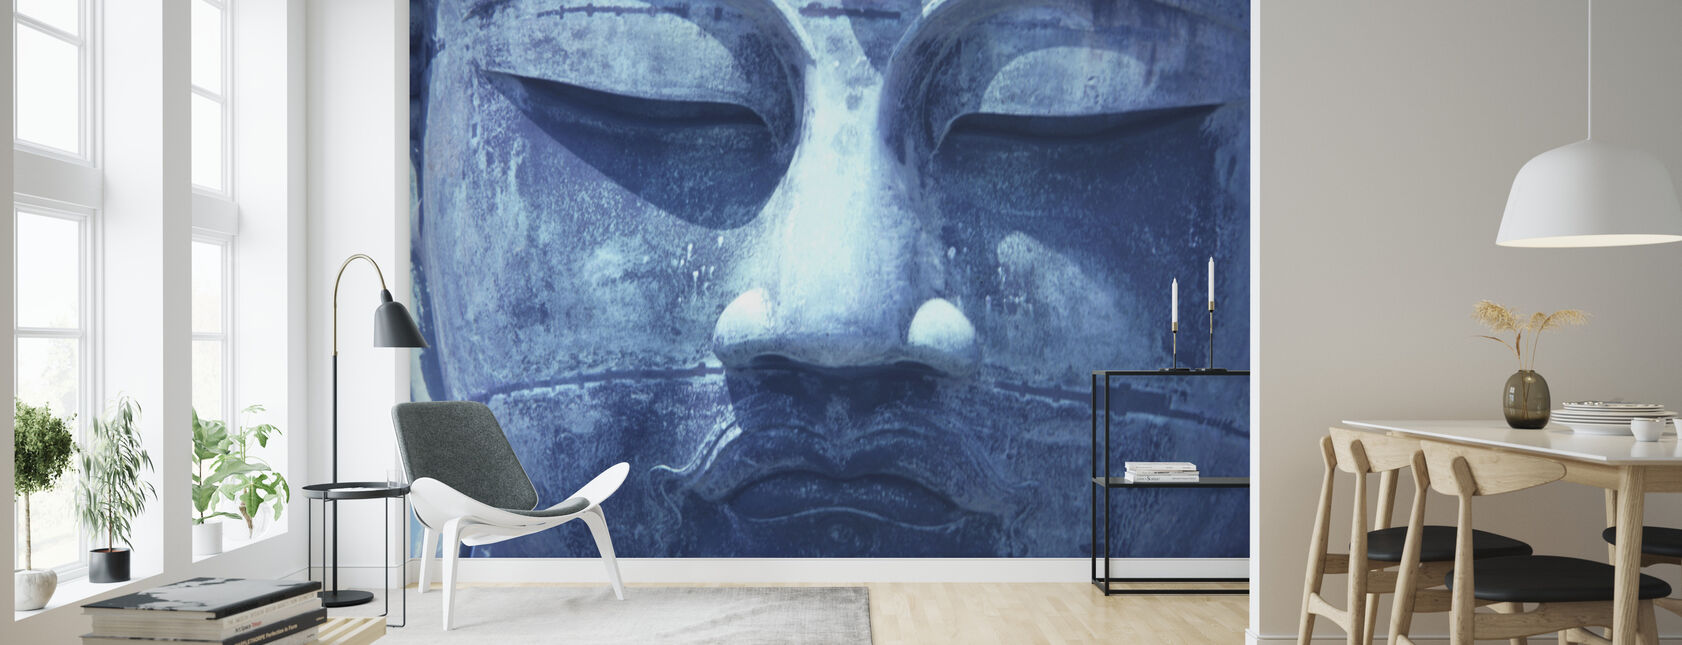 Blue Buddha - Wallpaper - Living Room